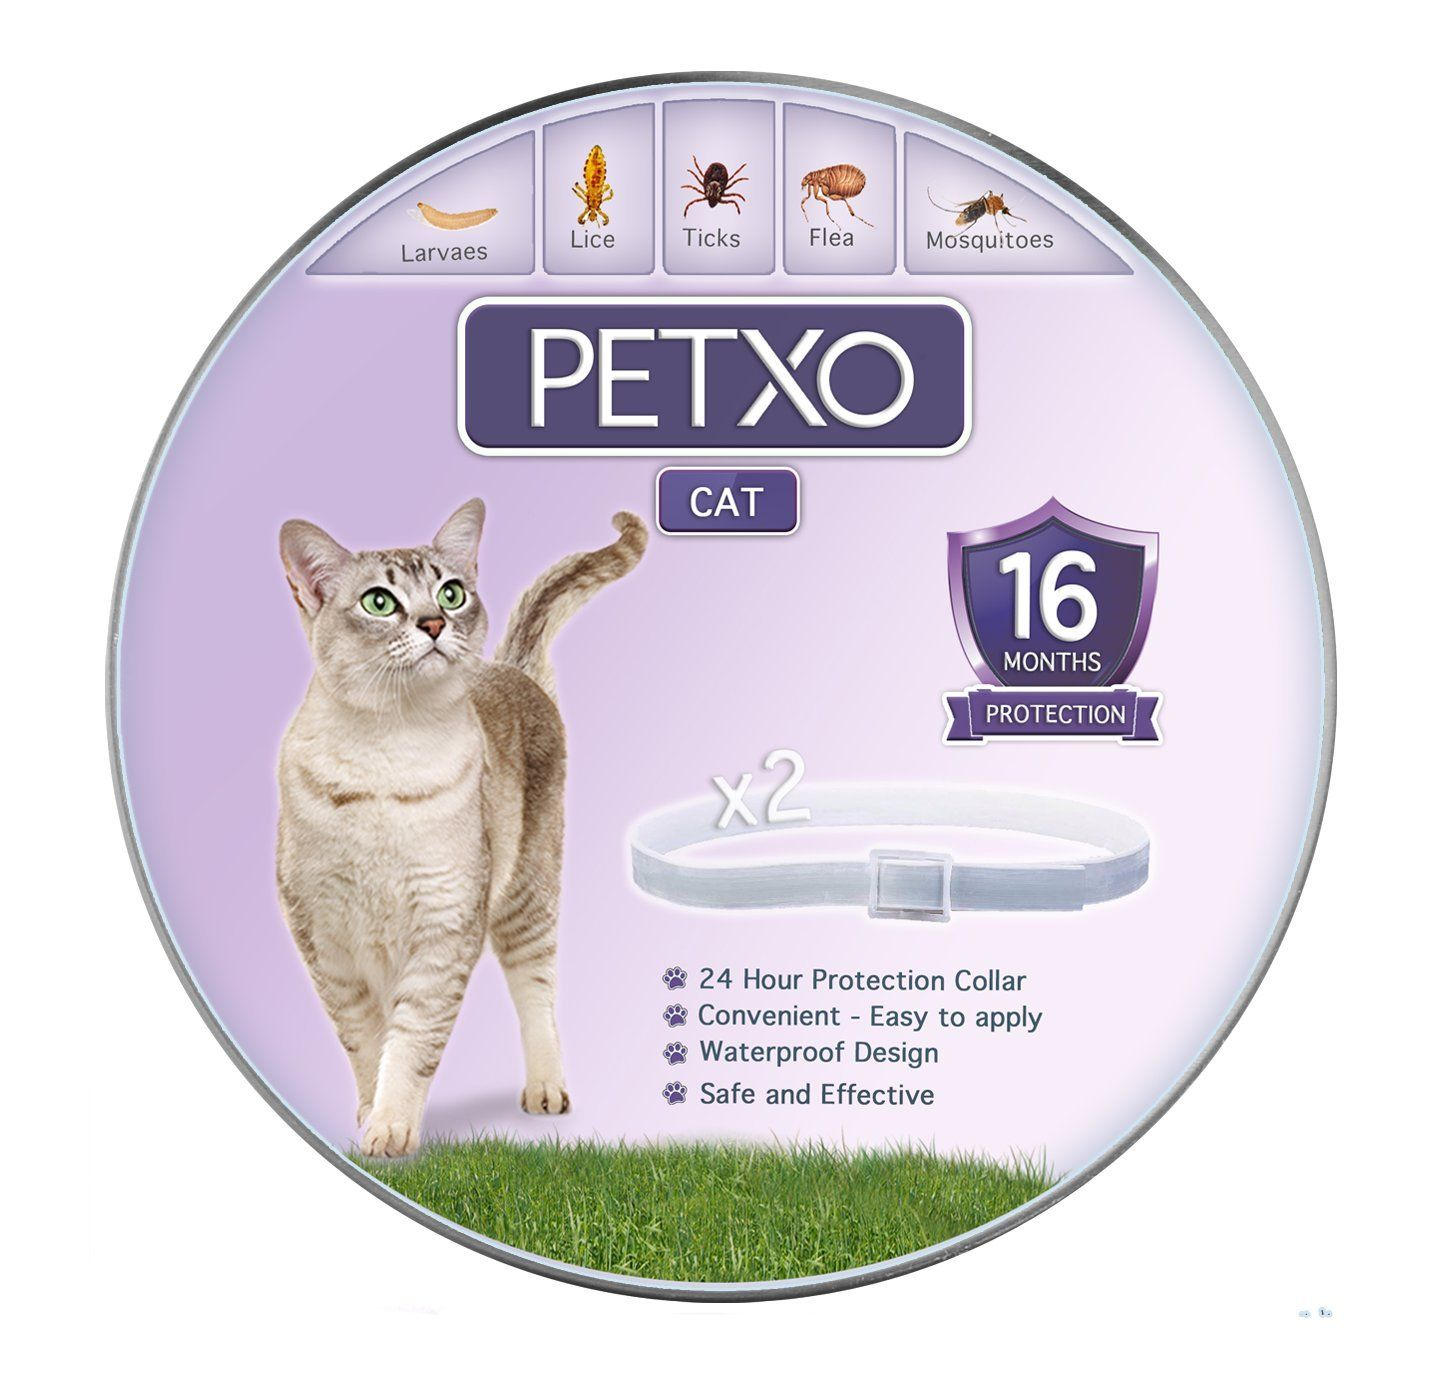 Petxo Cat Flea And Tick Collar Adjustable And Waterproof Cats Flea Collar Cats Tick Collar Flea And Tick Prevention For Cat Flea Collar Cat Fleas Cat Collars